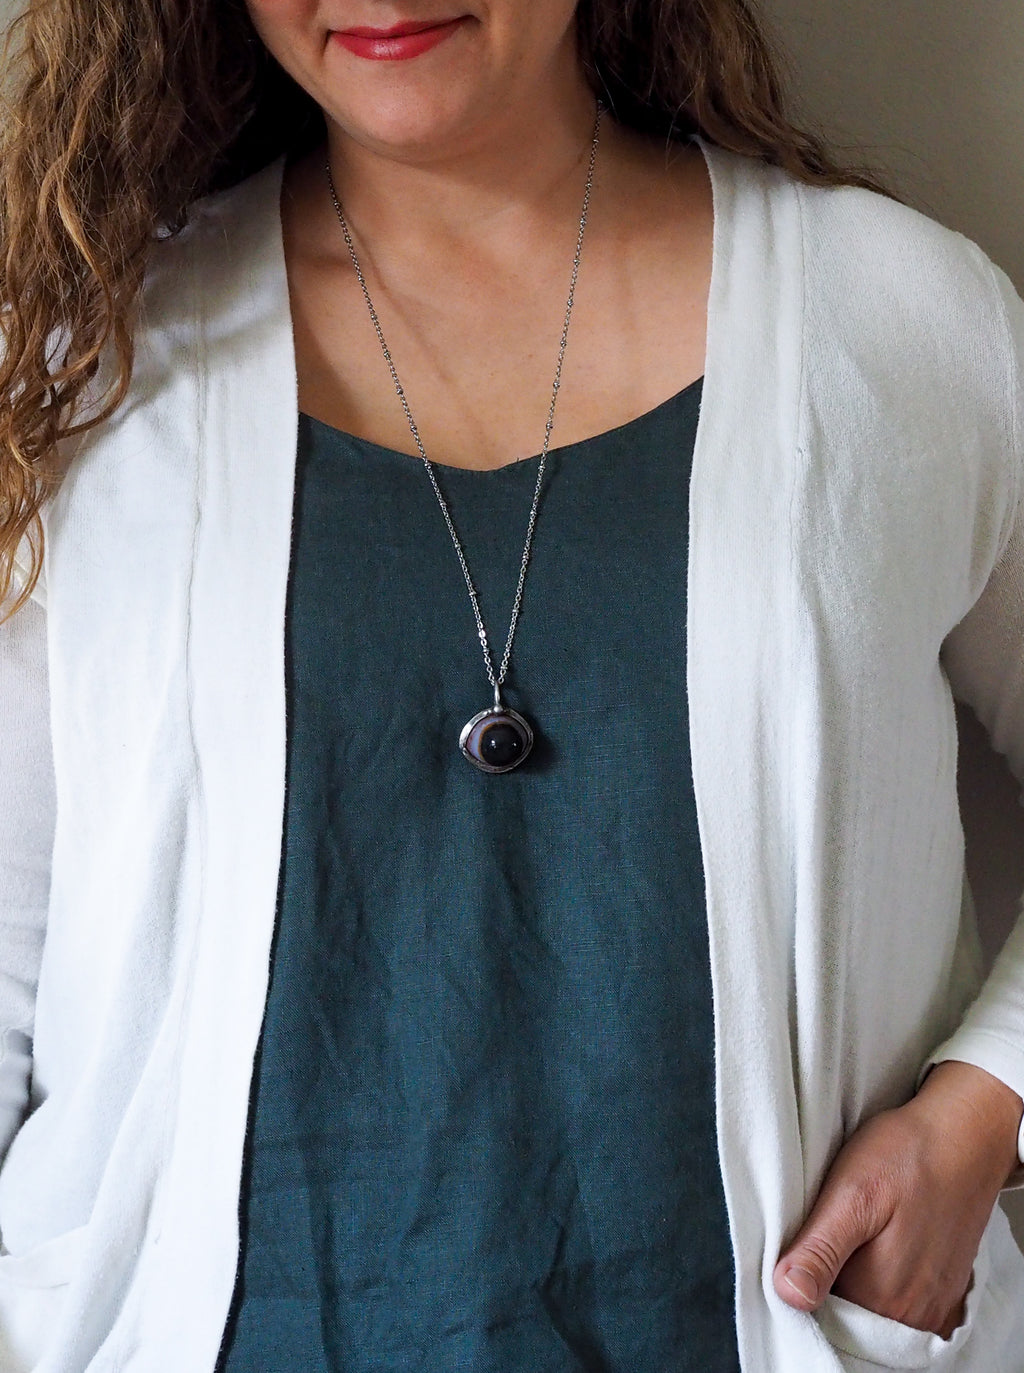 agate eye crystal talisman necklace on woman in blue top